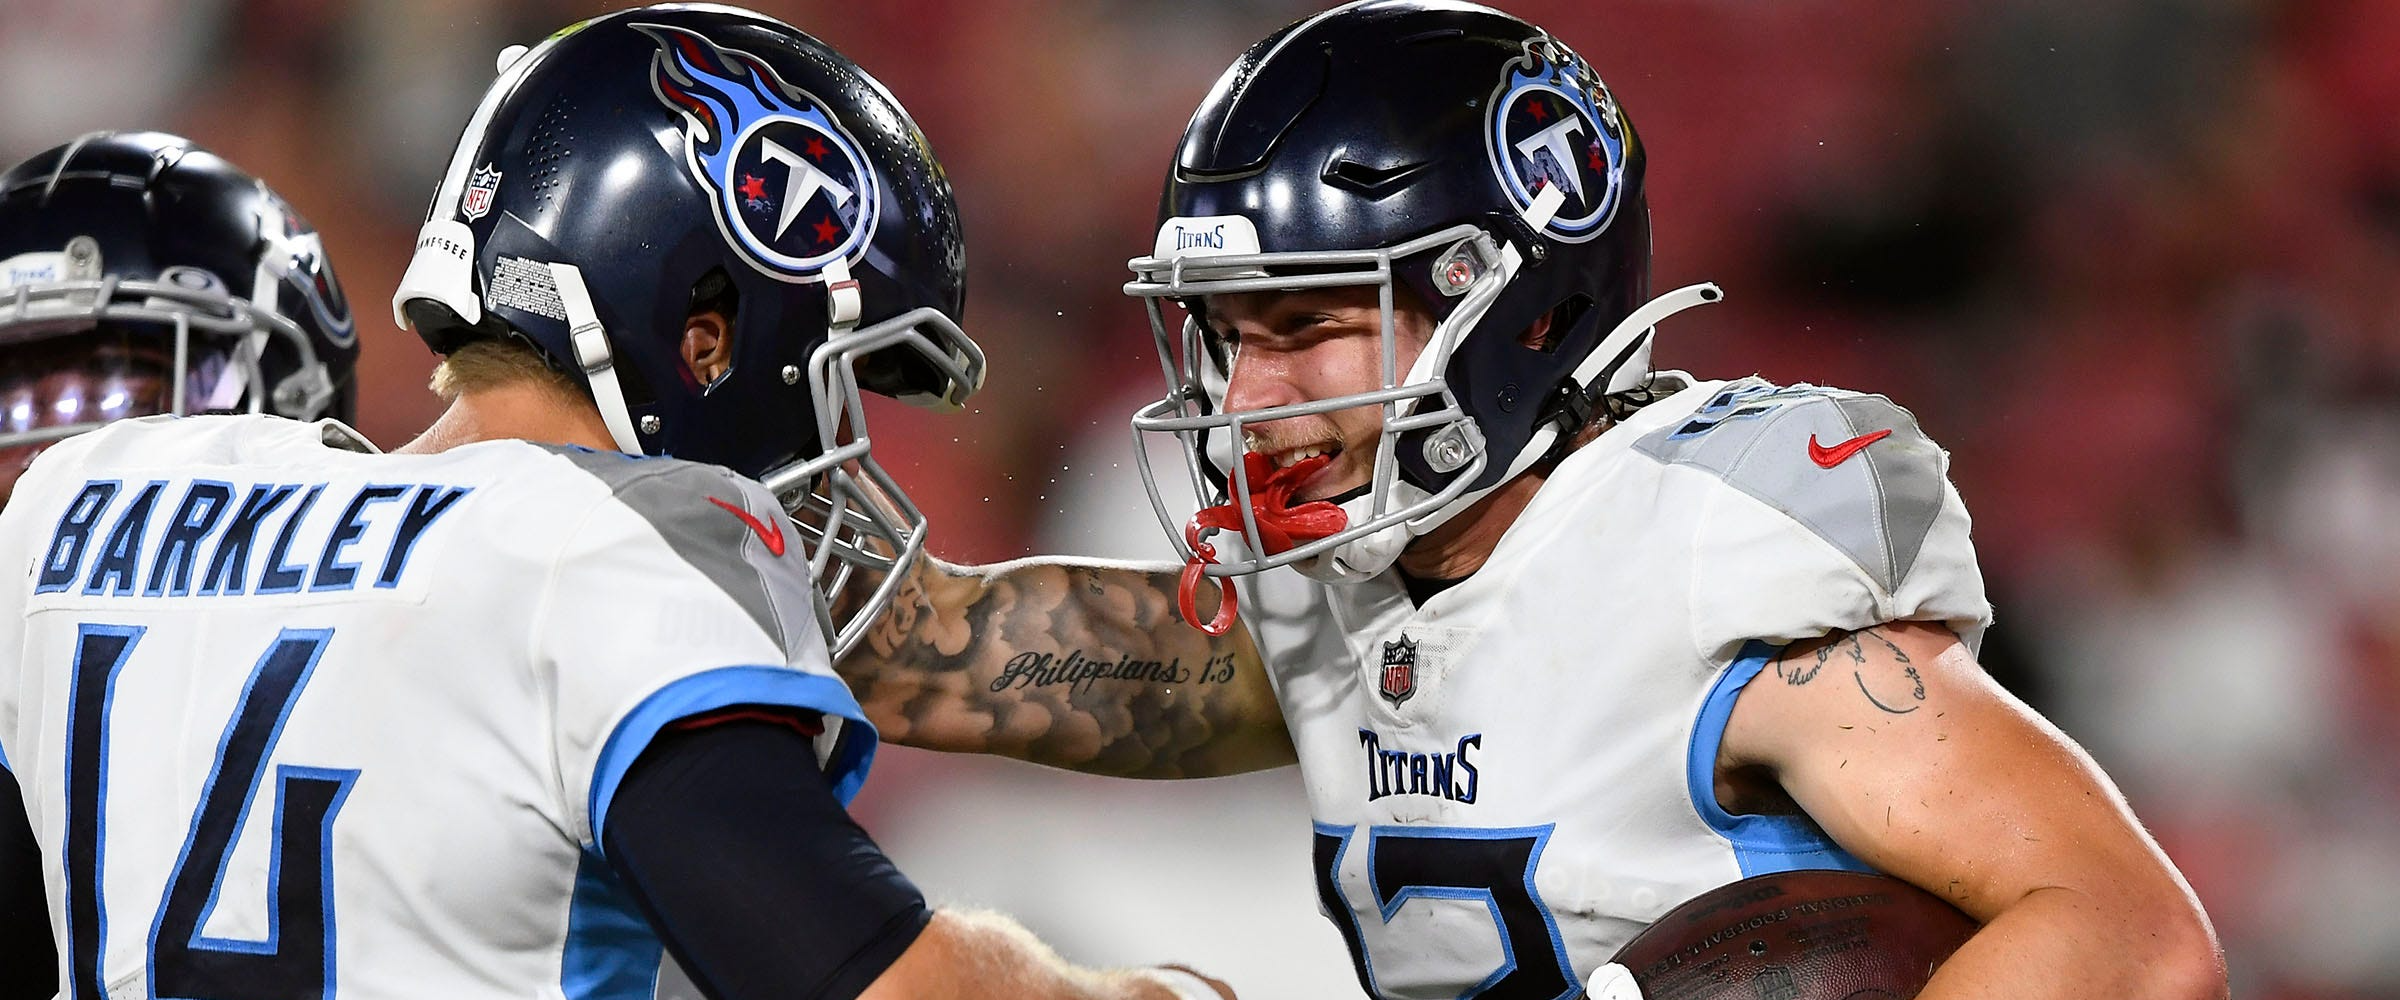 Titans: 4 players who have earned a spot on the 53-man roster